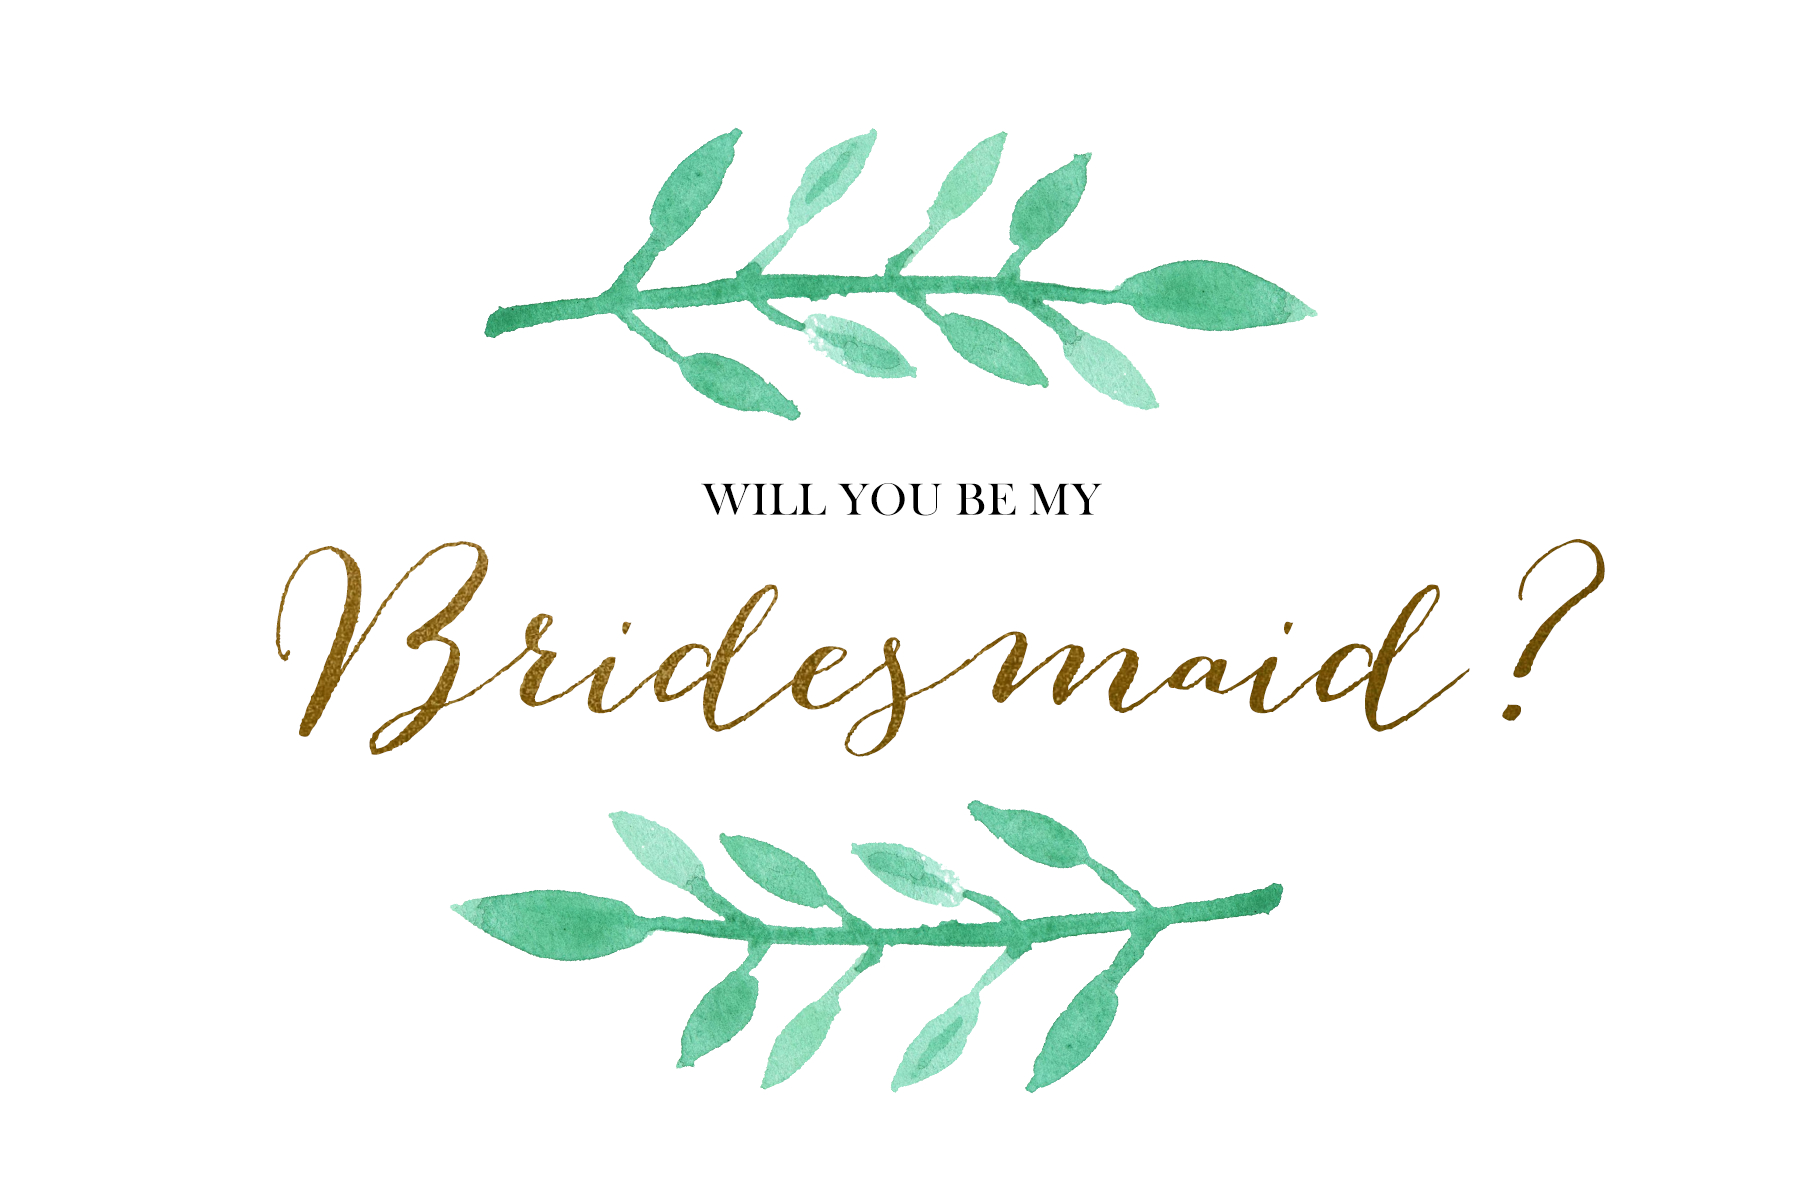 Will You Be My Bridesmaid Free Printable 6 6 X 4 • Fleurieu Weddings - Will You Be My Bridesmaid Free Printable